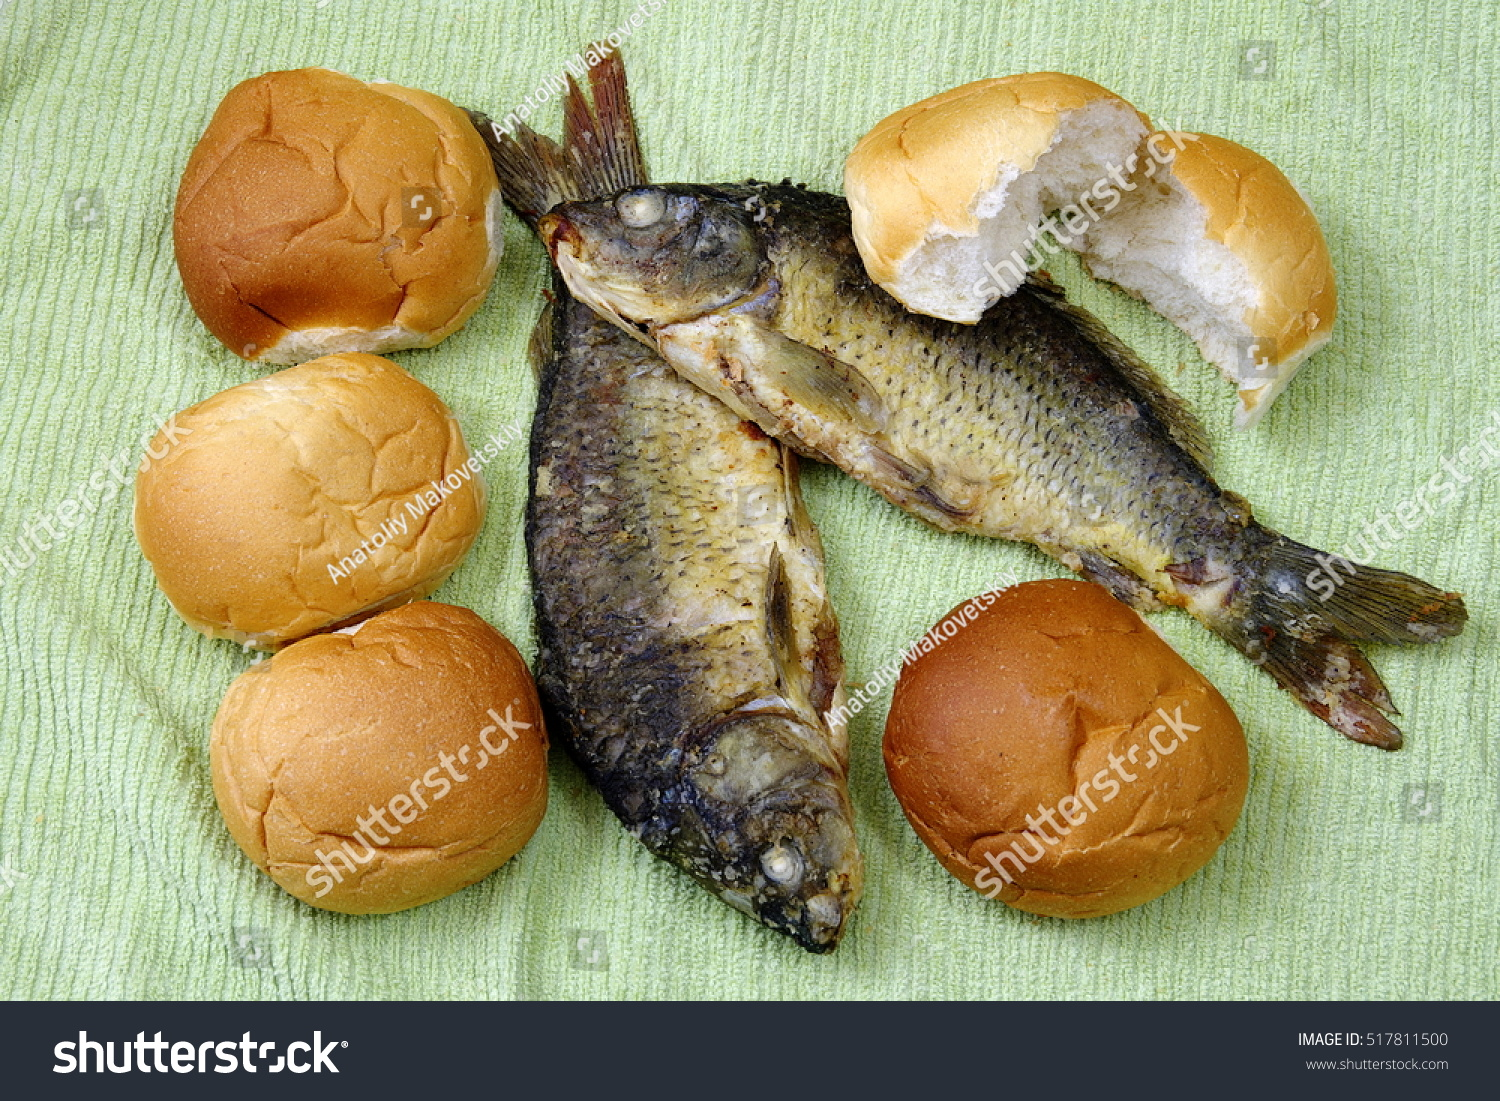 Five loaves two fishes stock photo 517811500 shutterstock for Five loaves two fish